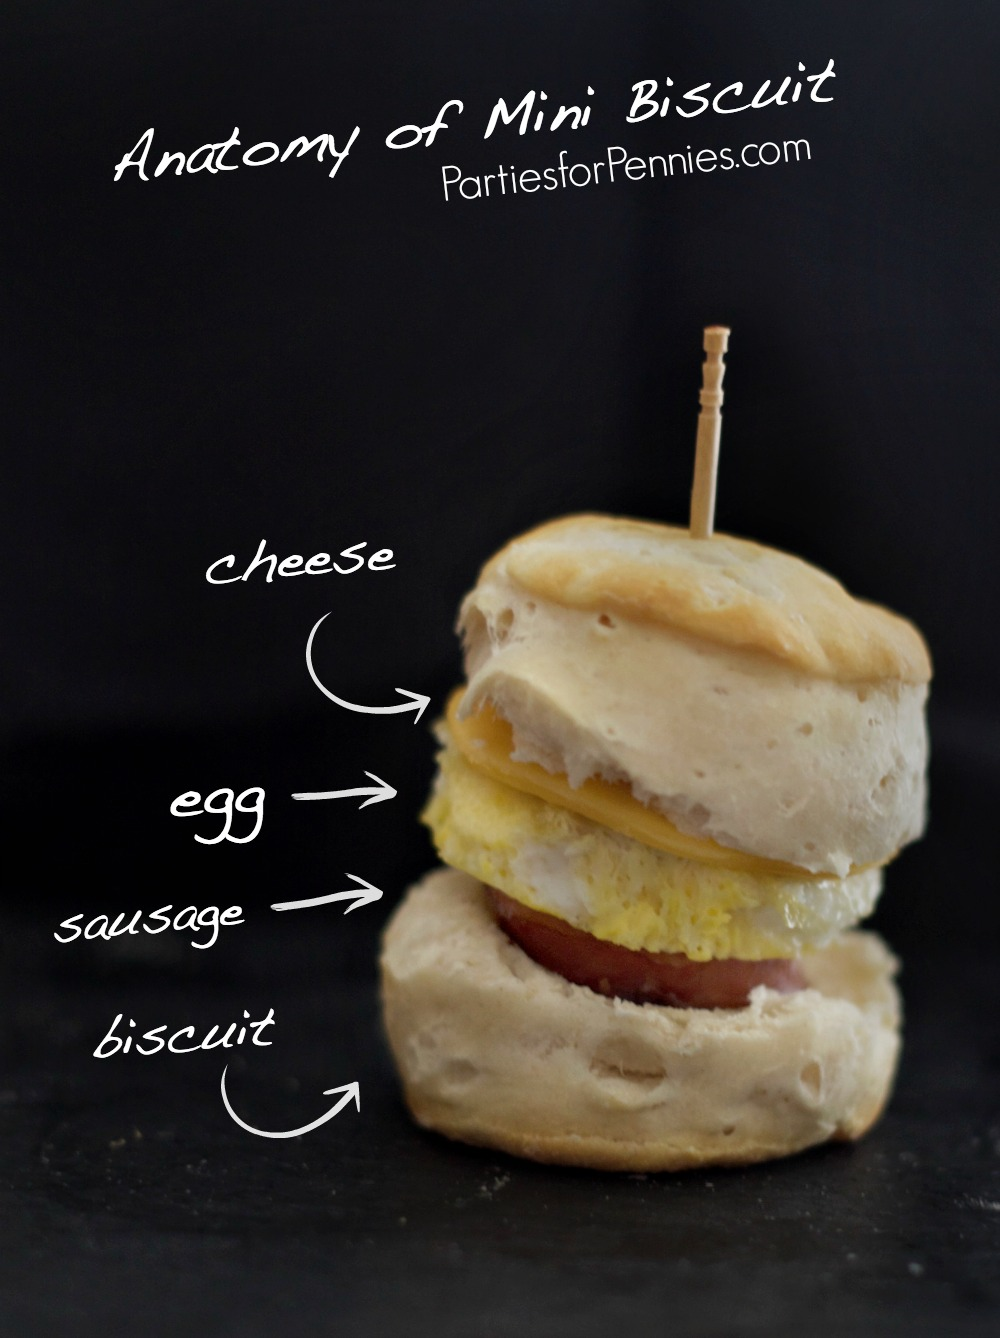 Mini Sausage Egg Cheese Biscuit Appetizer Recipe | PartiesforPennies.com | Anatomy of Biscuit, Recipe, Breakfast, Brunch, easy appetizer